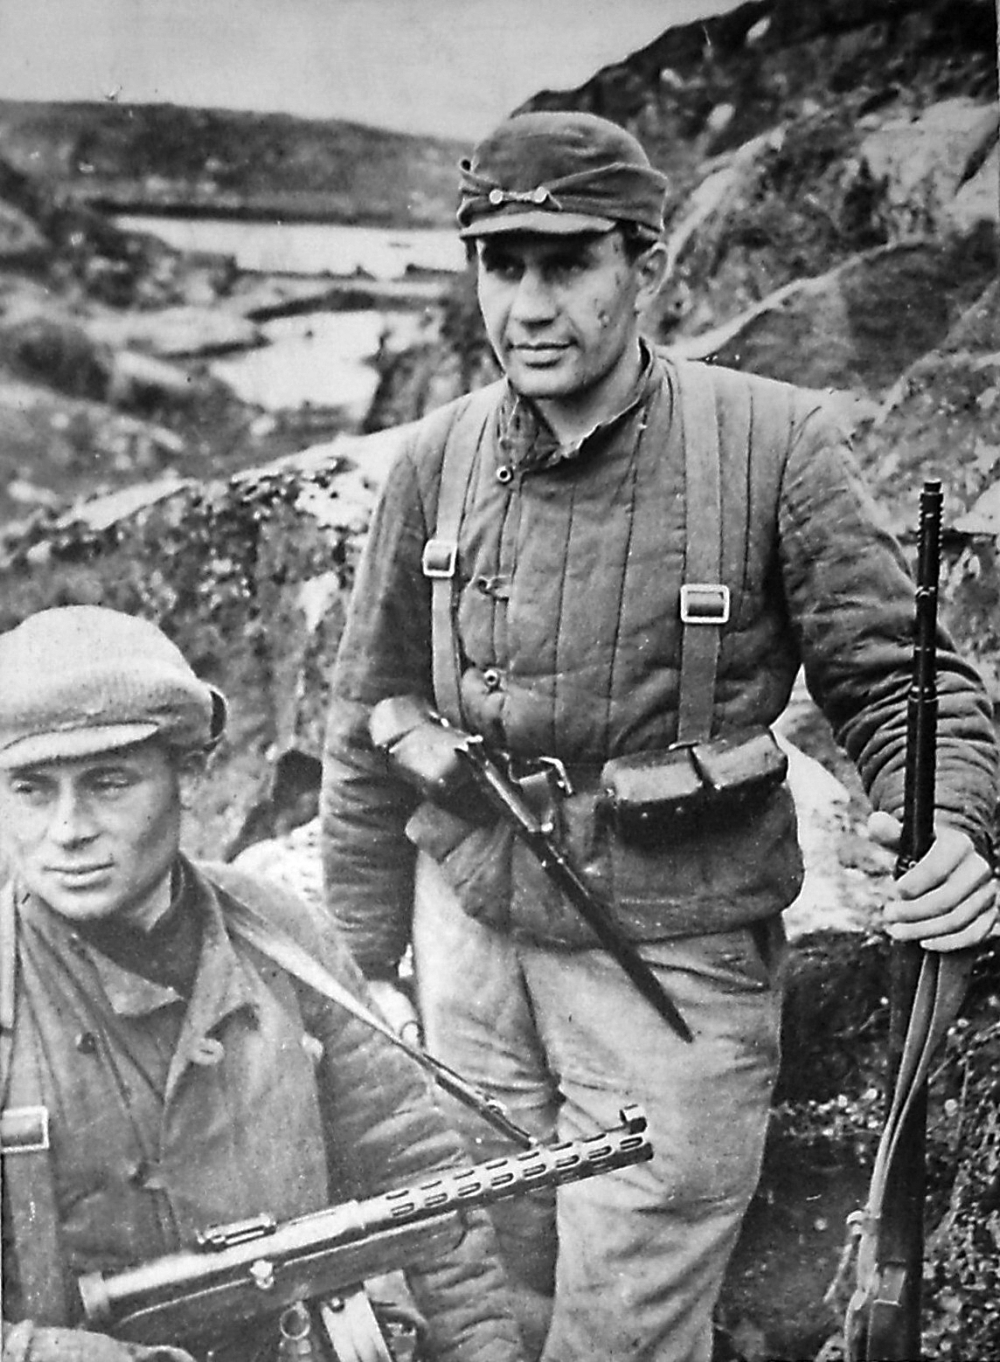 Soldier at right holding SVT-40